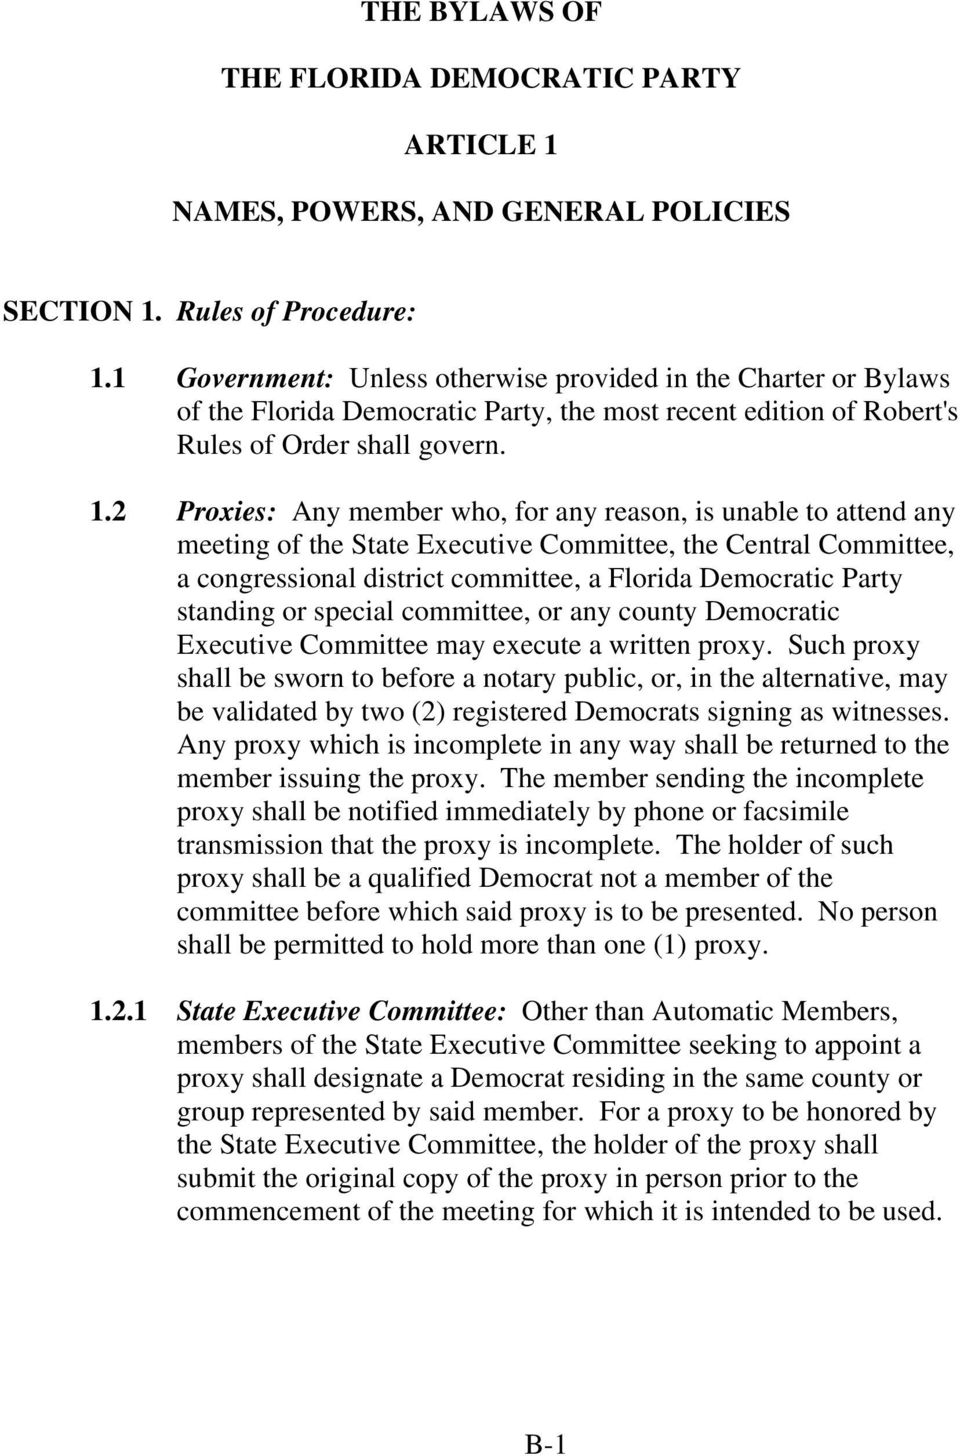 2 Proxies: Any member who, for any reason, is unable to attend any meeting of the State Executive Committee, the Central Committee, a congressional district committee, a Florida Democratic Party